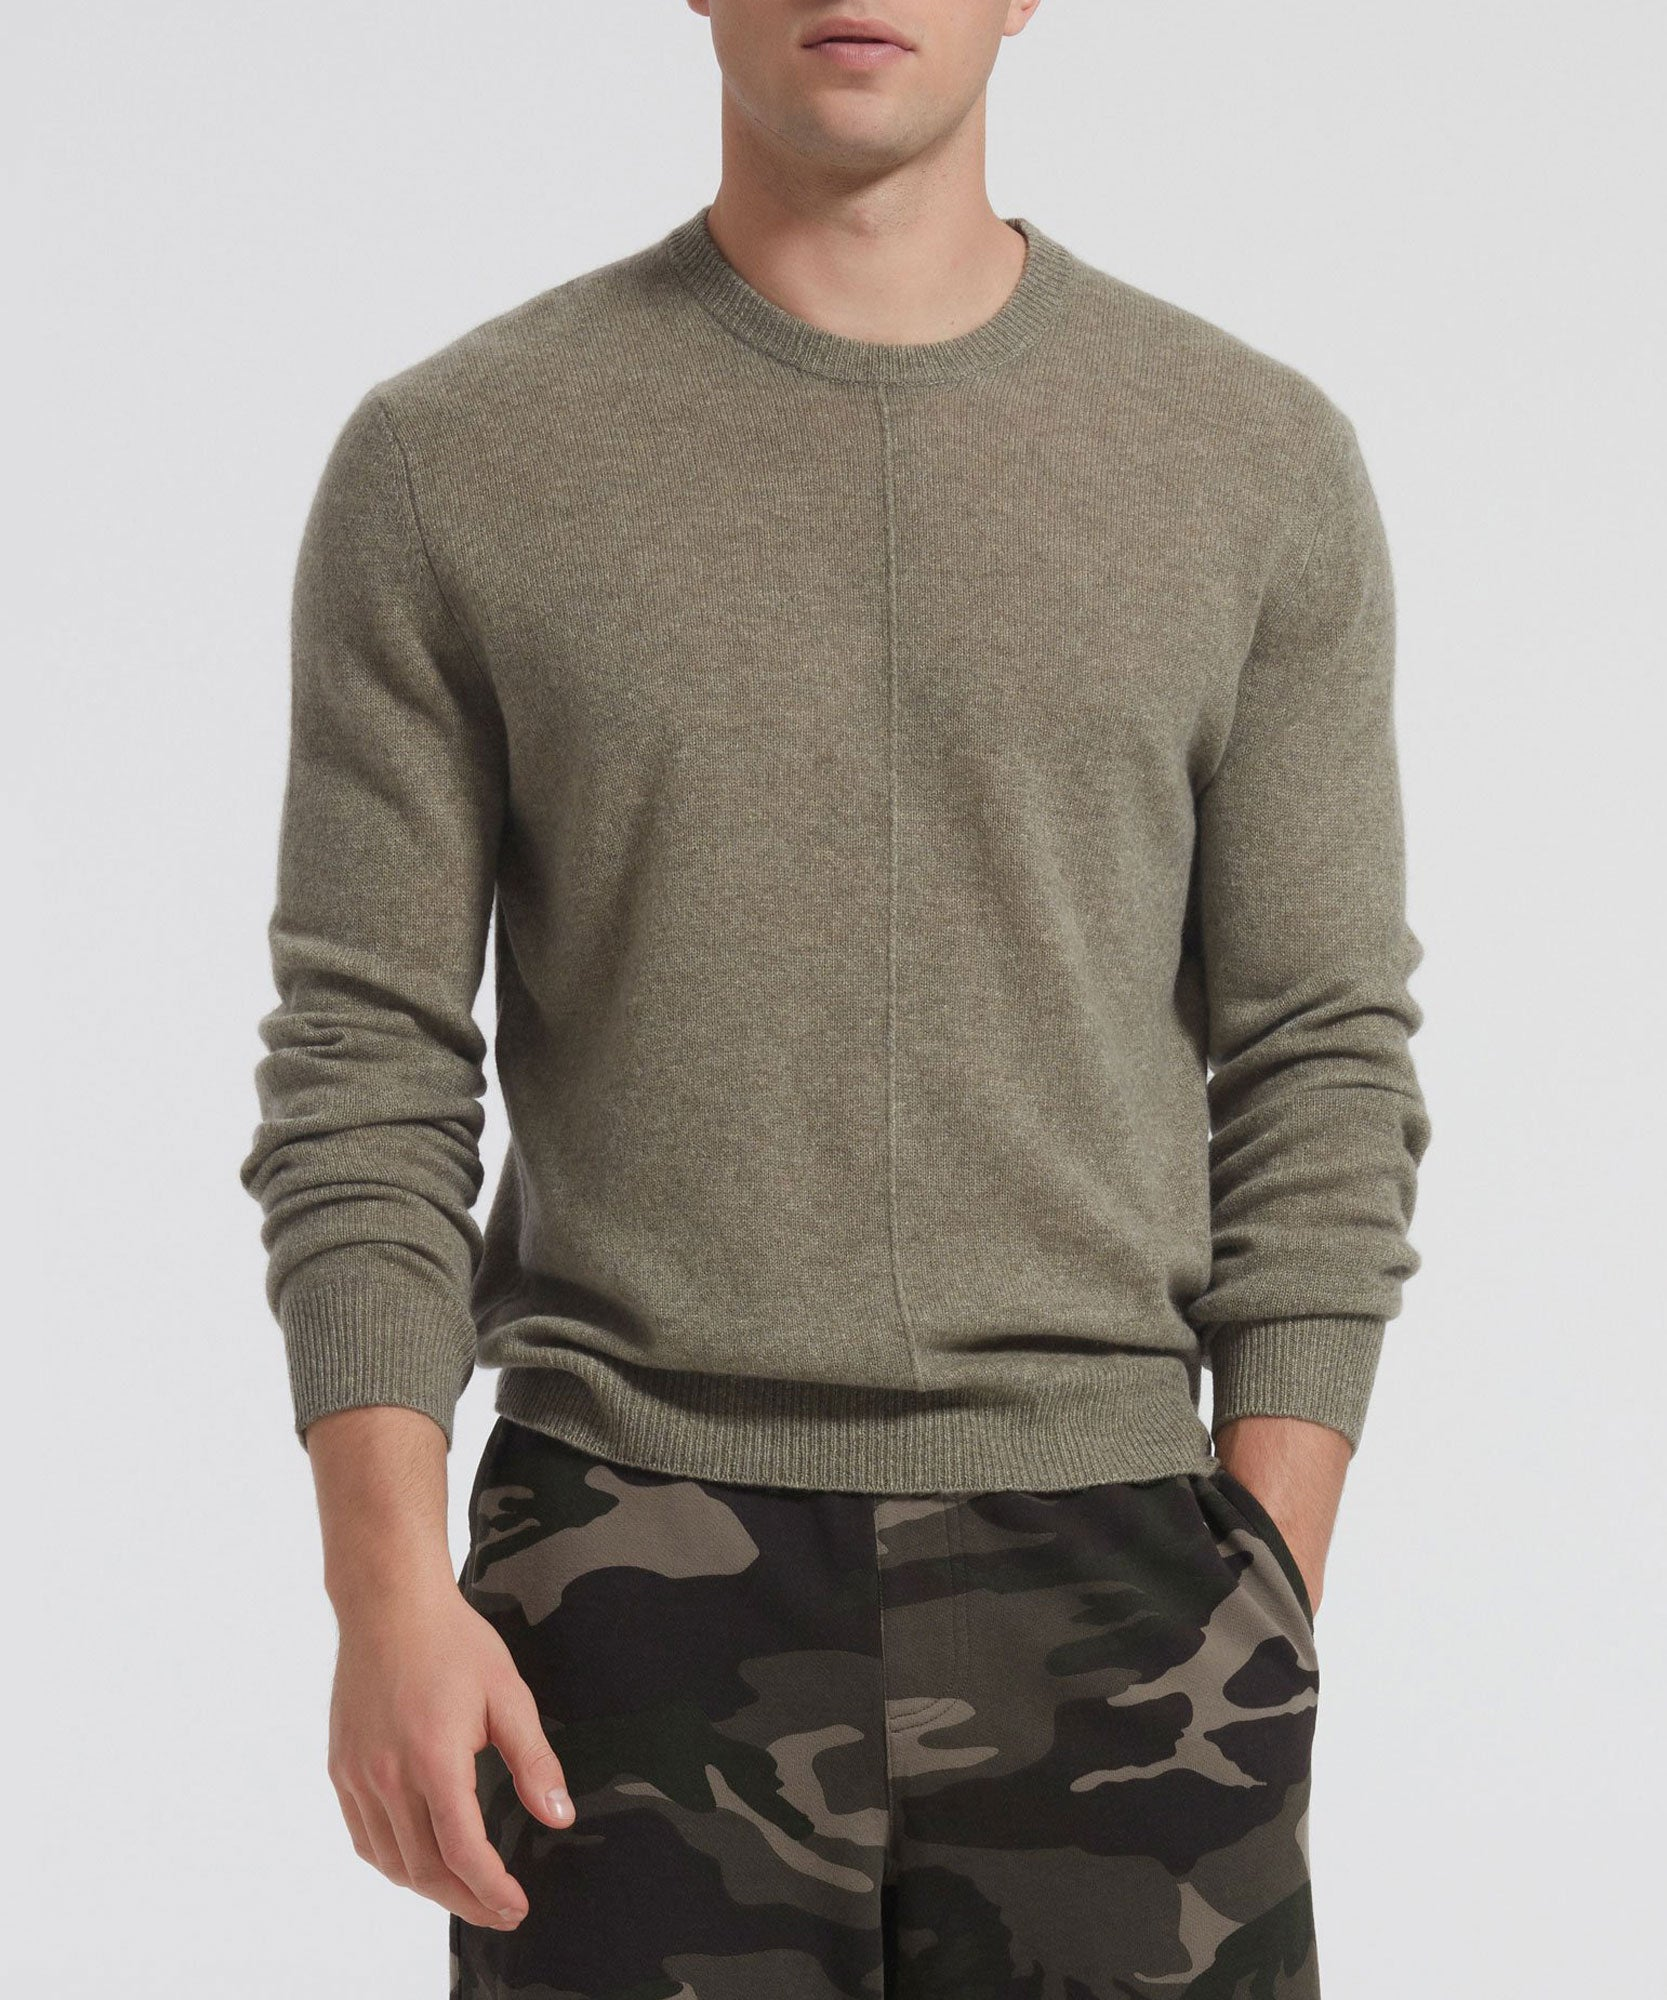 Grass Cashmere Exposed Seam Crew Neck Sweater - Men's Luxe Cashmere Sweaters by ATM Anthony Thomas Melillo